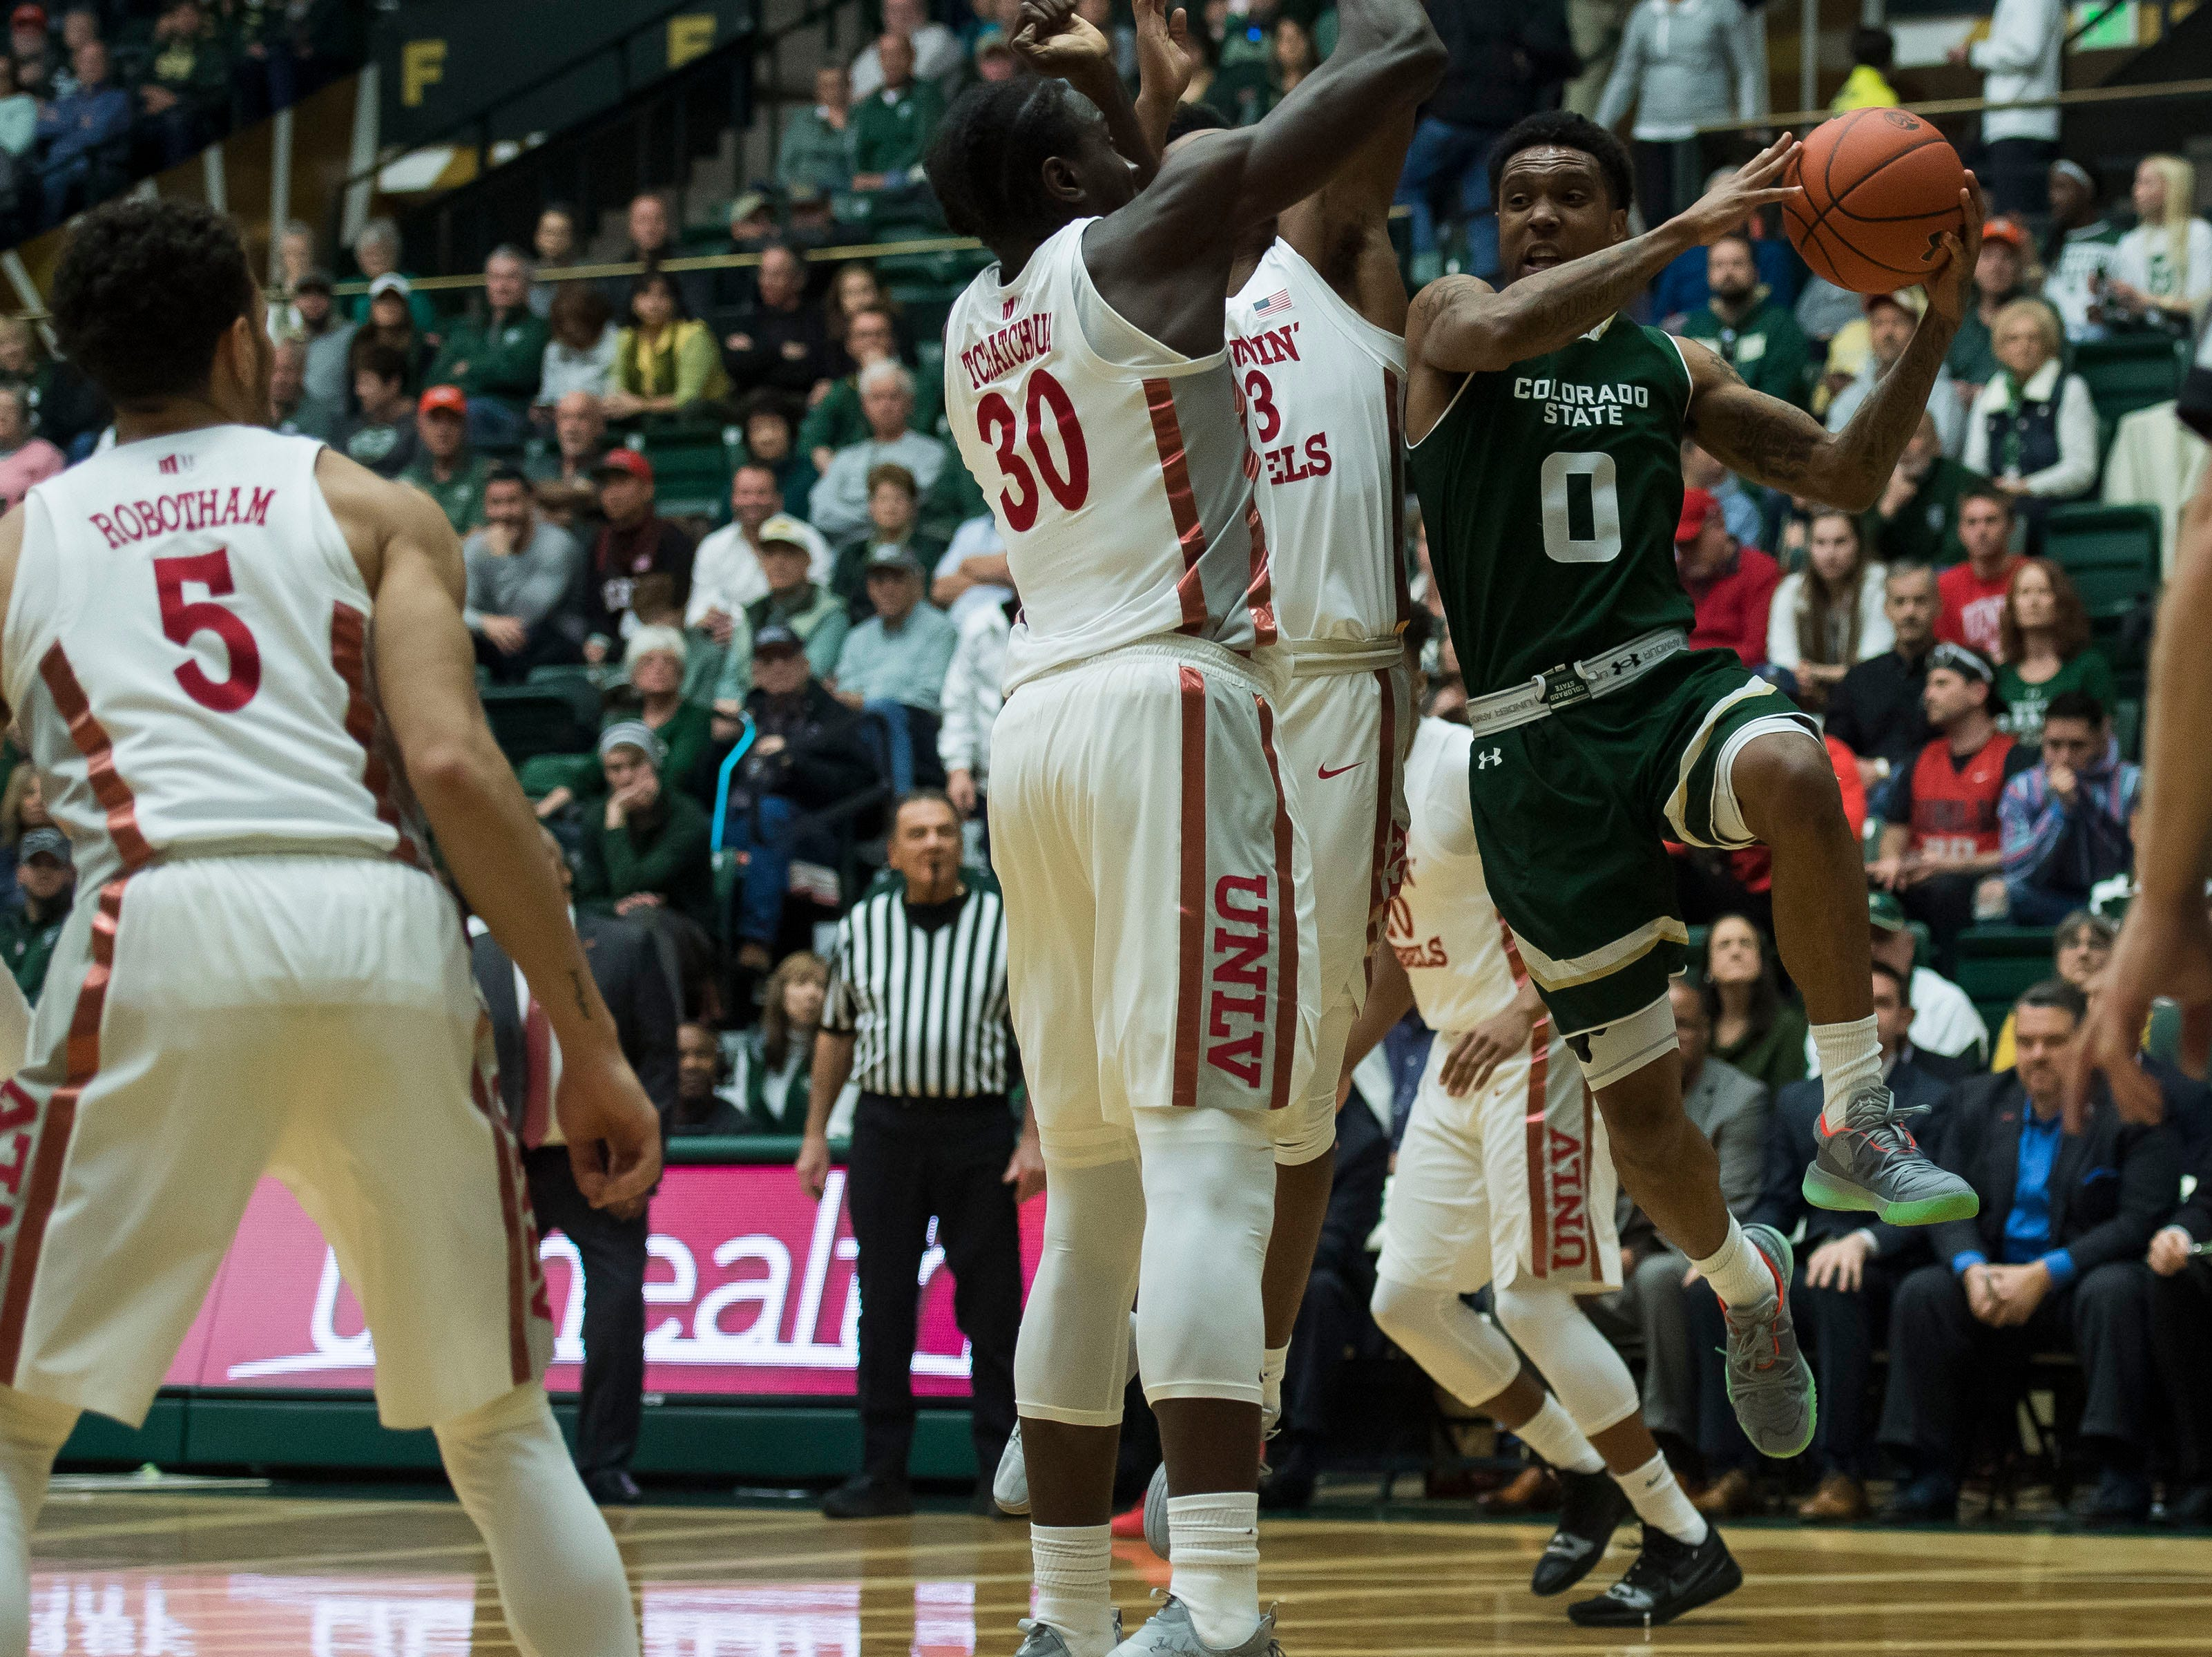 Colorado State University senior guard Hyron Edwards (0) looks to pass during a game against University of Nevada Las Vegas on Saturday, March 9, 2019, at Moby Arena in Fort Collins, Colo.